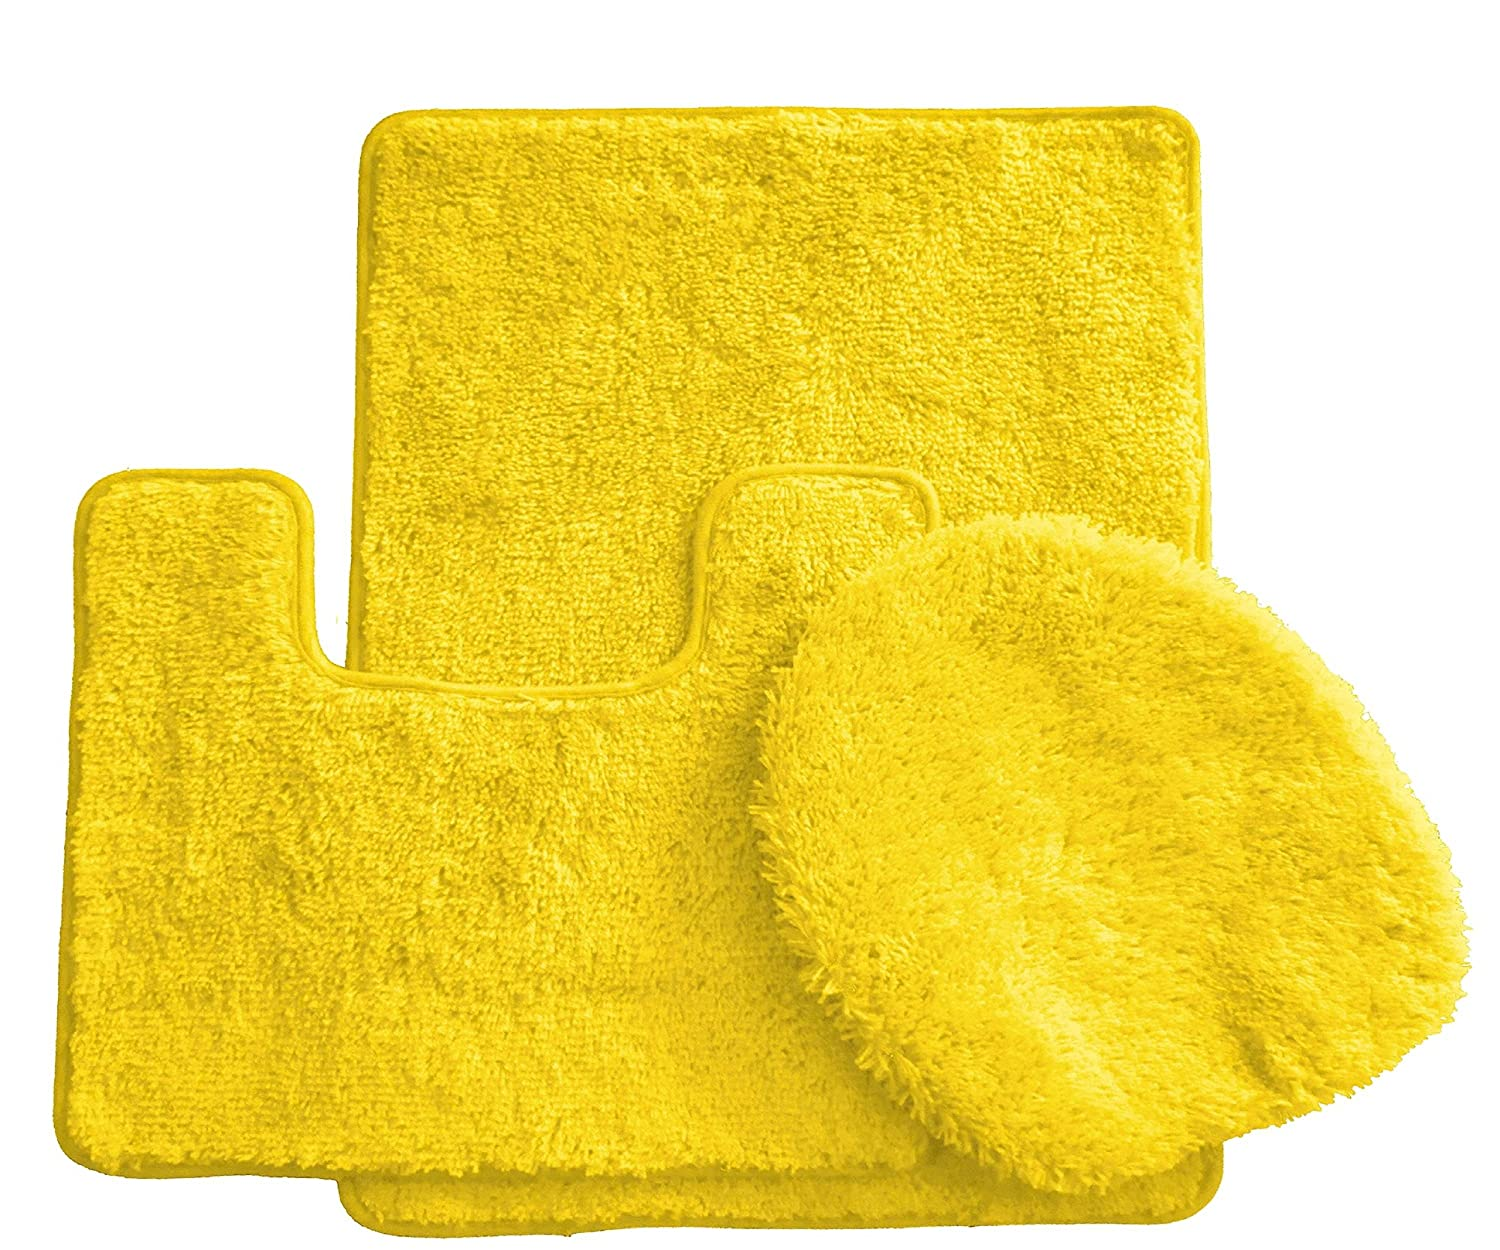 Plush Bathroom Rug Sets: Royal Plush Collection 3 Piece Bathroom Rug Set